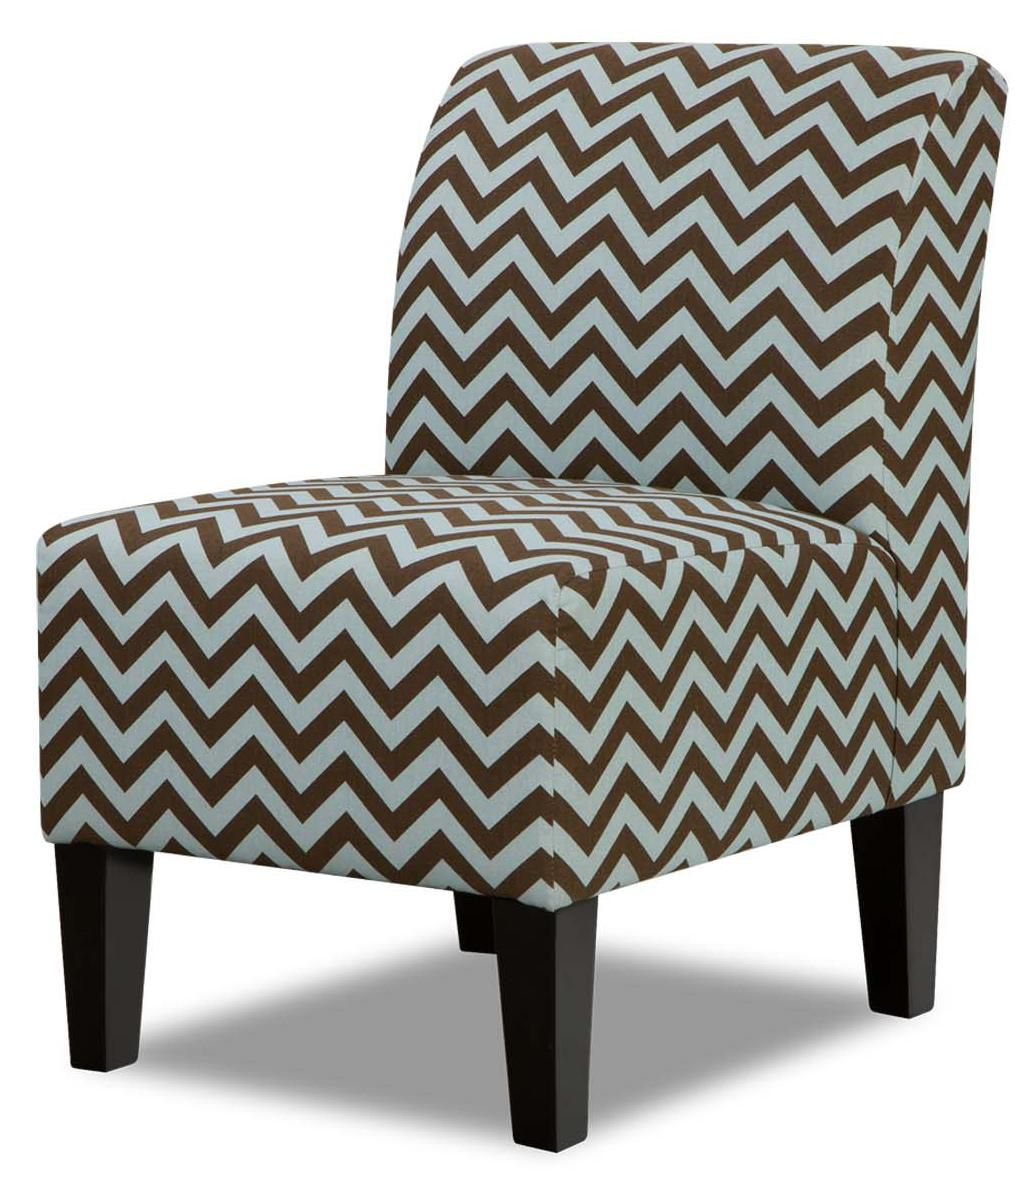 Best 3028 Accent Chair By Simmons Upholstery 149 99 Chair 400 x 300